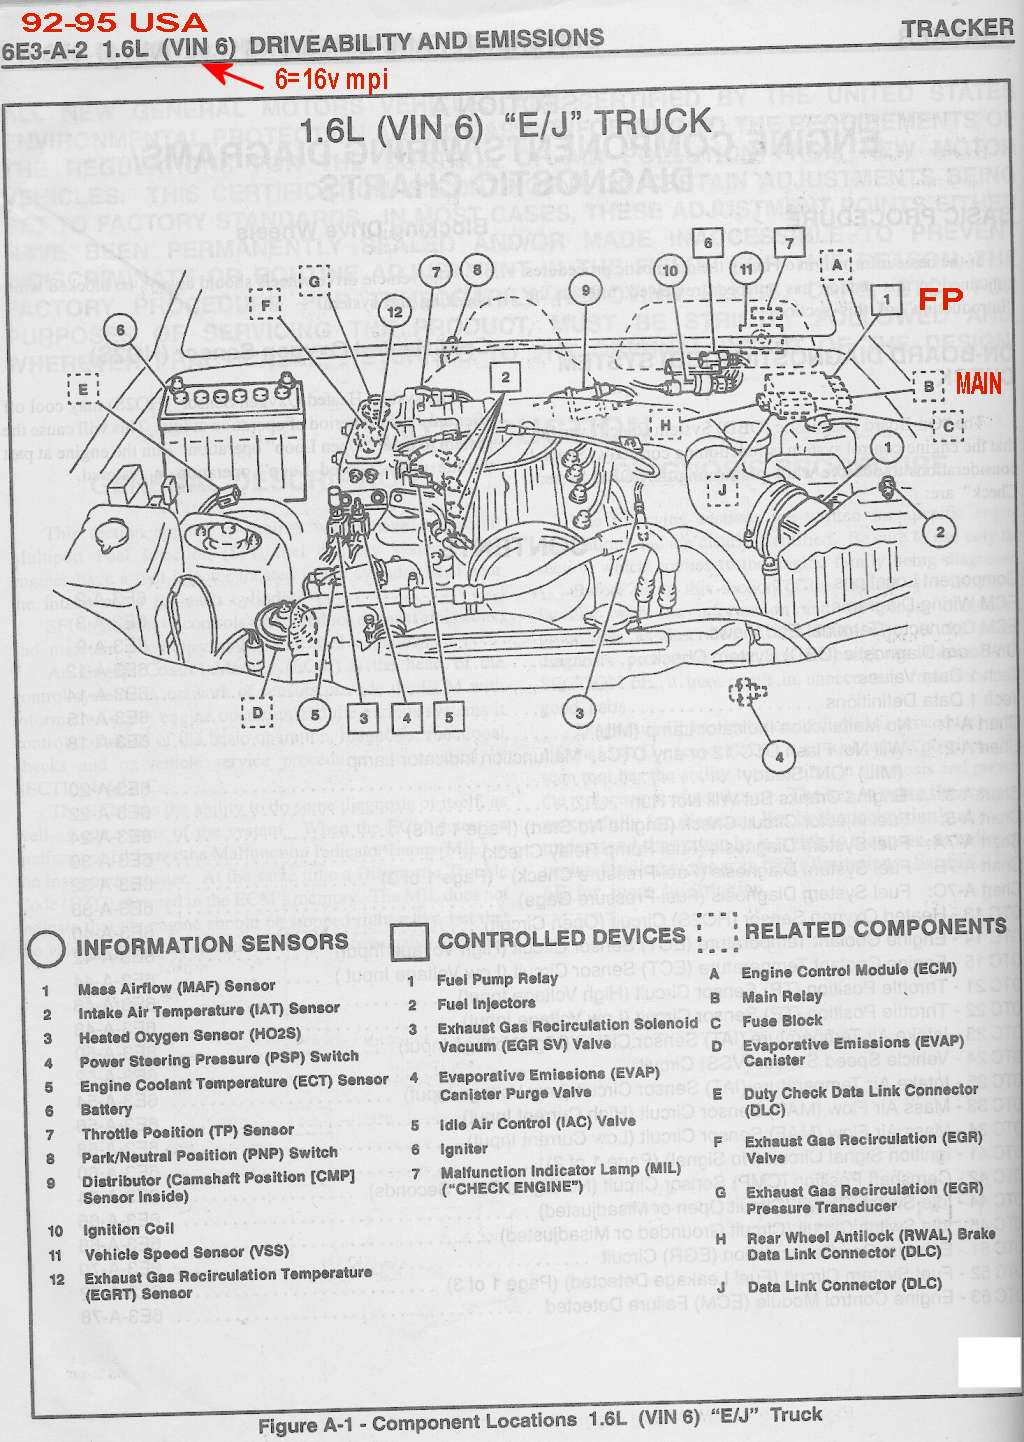 96 geo metro wiring diagram 1989 geo metro wiring diagram 2002 chevrolet prizm under dash fuse box diagram wiring ... #14